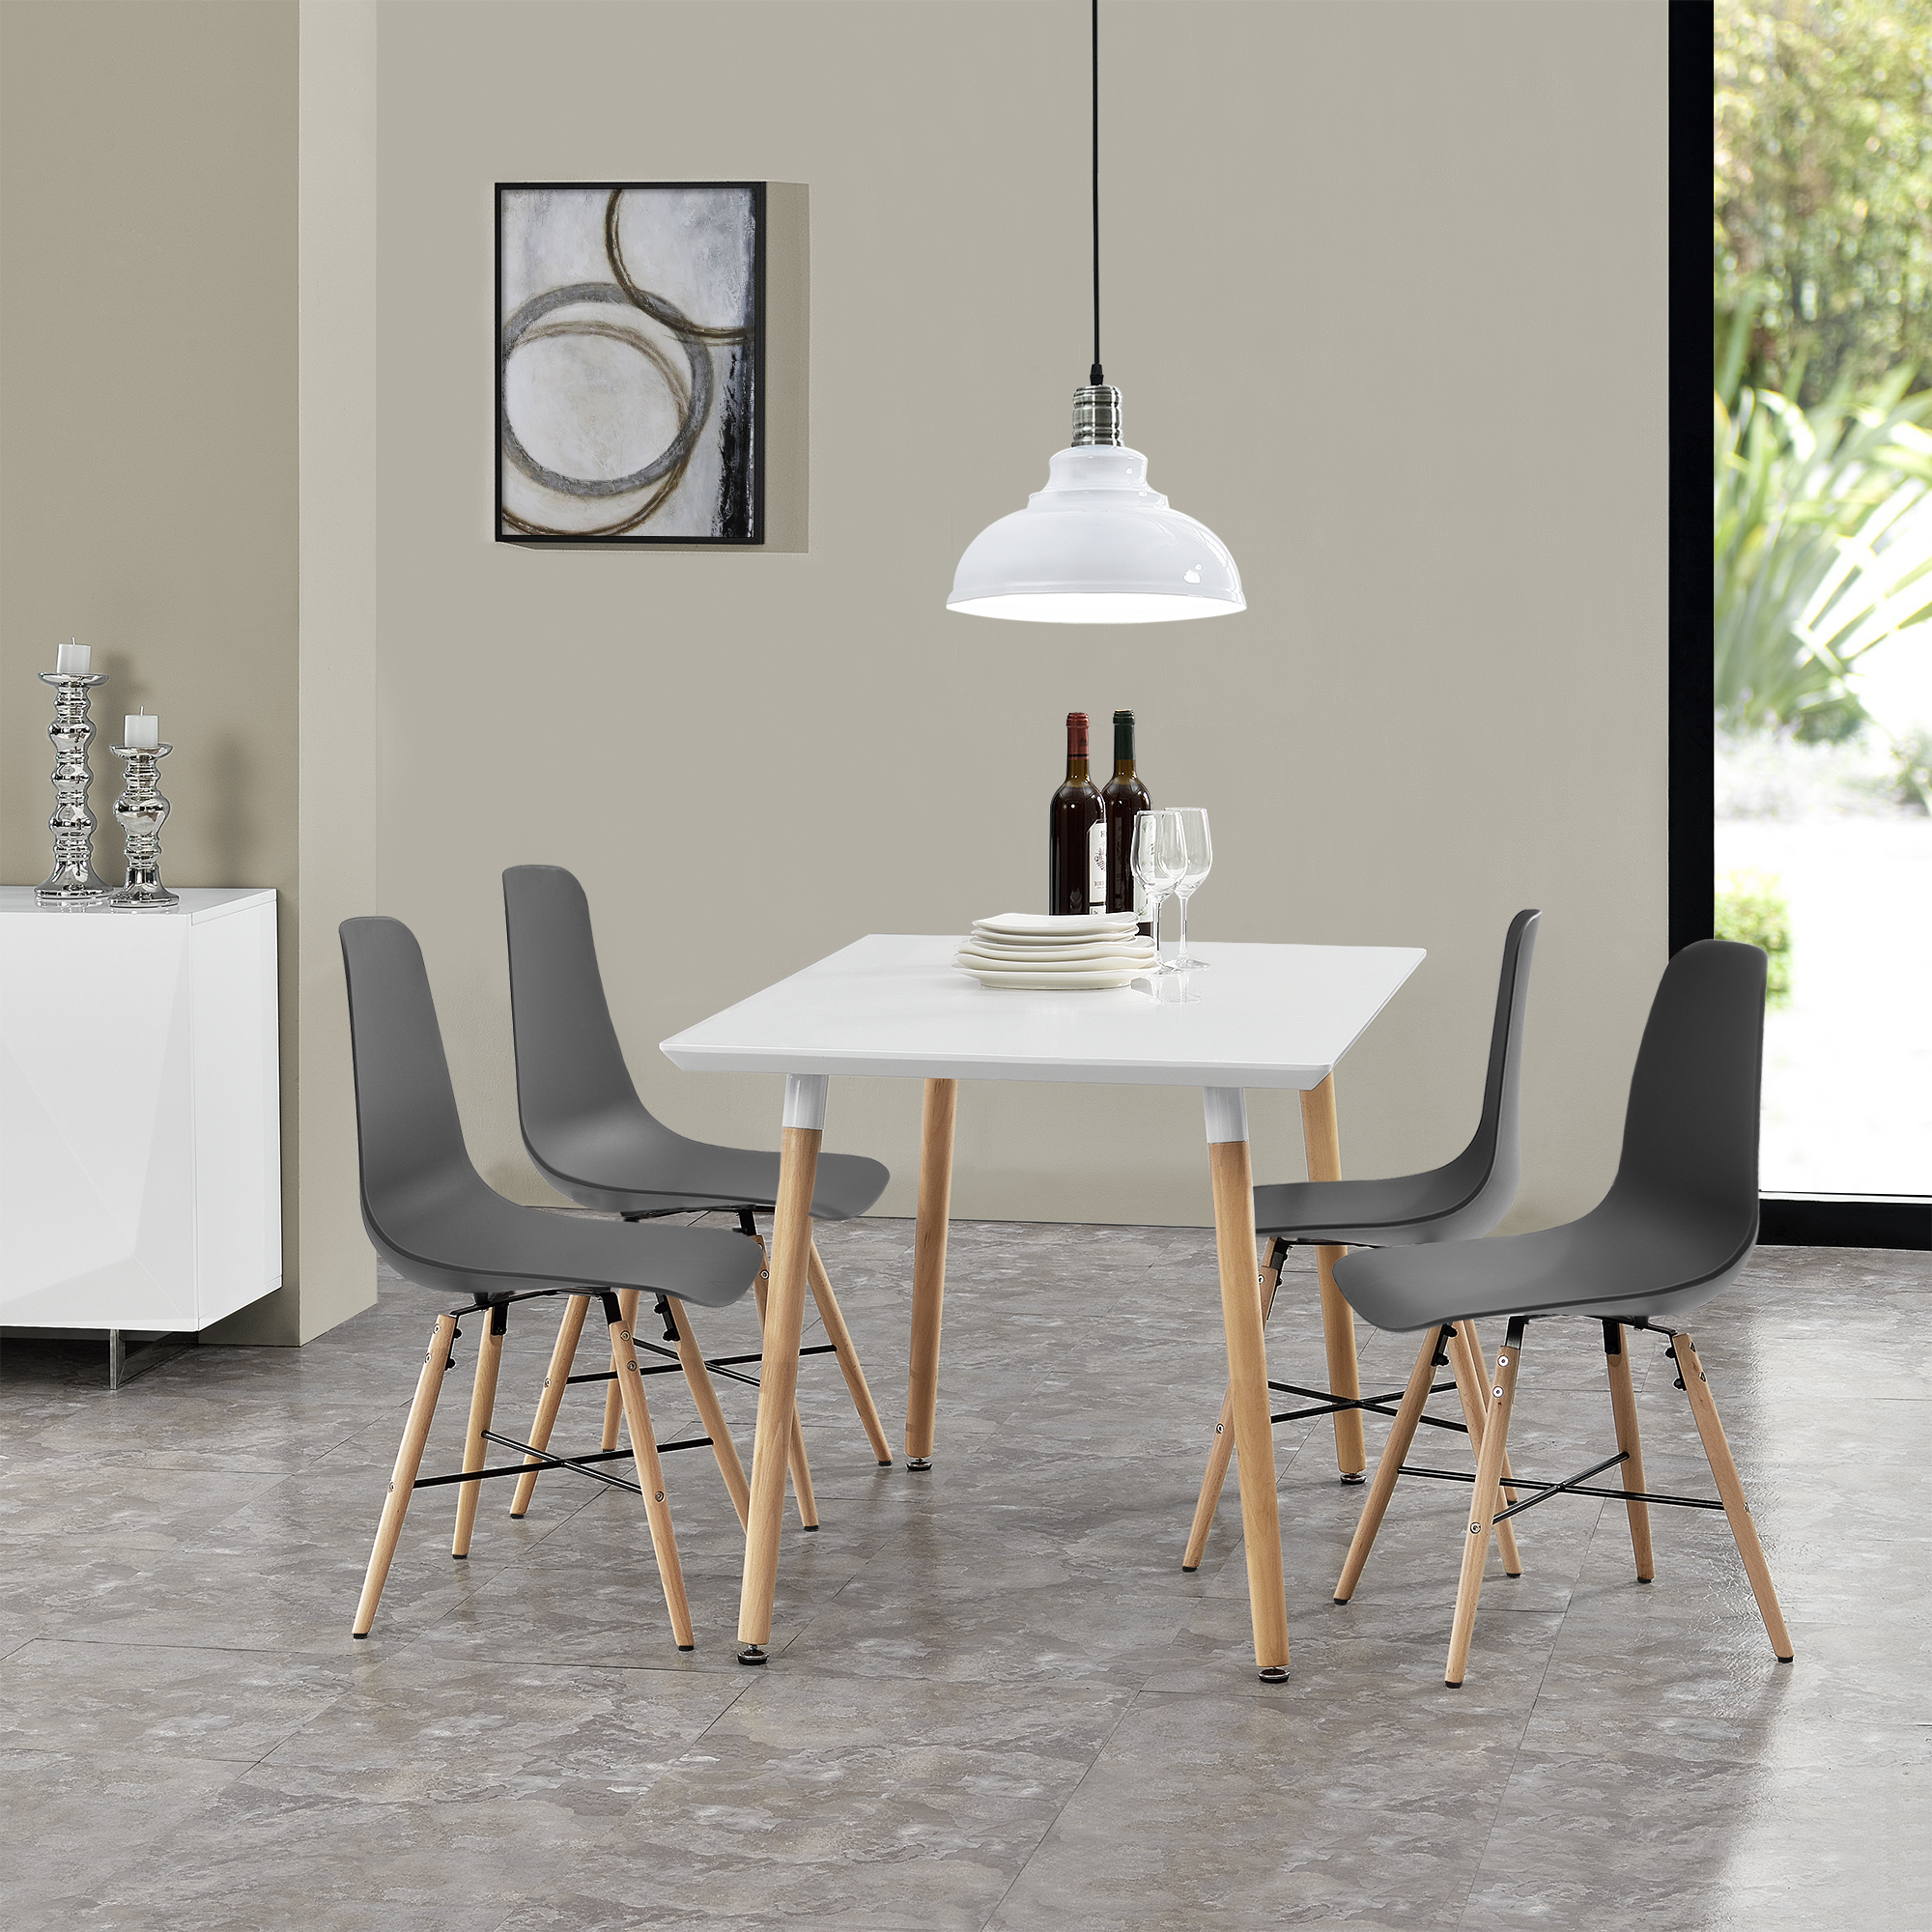 Gray Kitchen Chairs Dining Table With 4 Chairs White Grey 120x70cm Kitchen